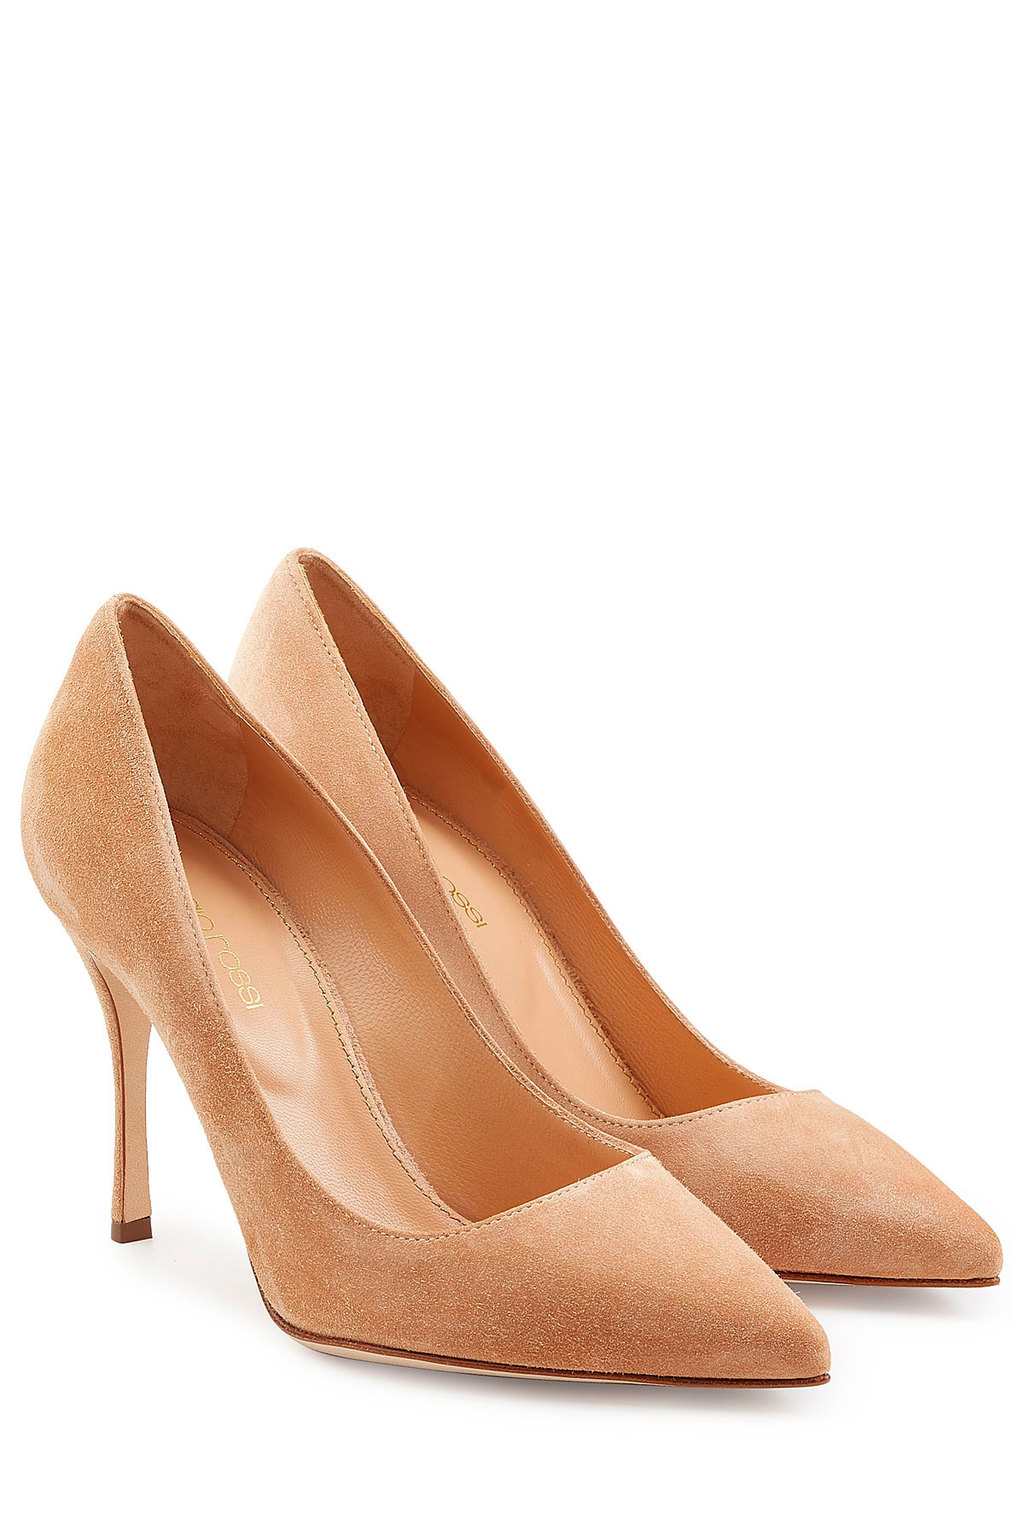 Suede Pumps - predominant colour: nude; occasions: evening, occasion; material: suede; heel height: high; heel: stiletto; toe: pointed toe; style: courts; finish: plain; pattern: plain; season: a/w 2015; wardrobe: event